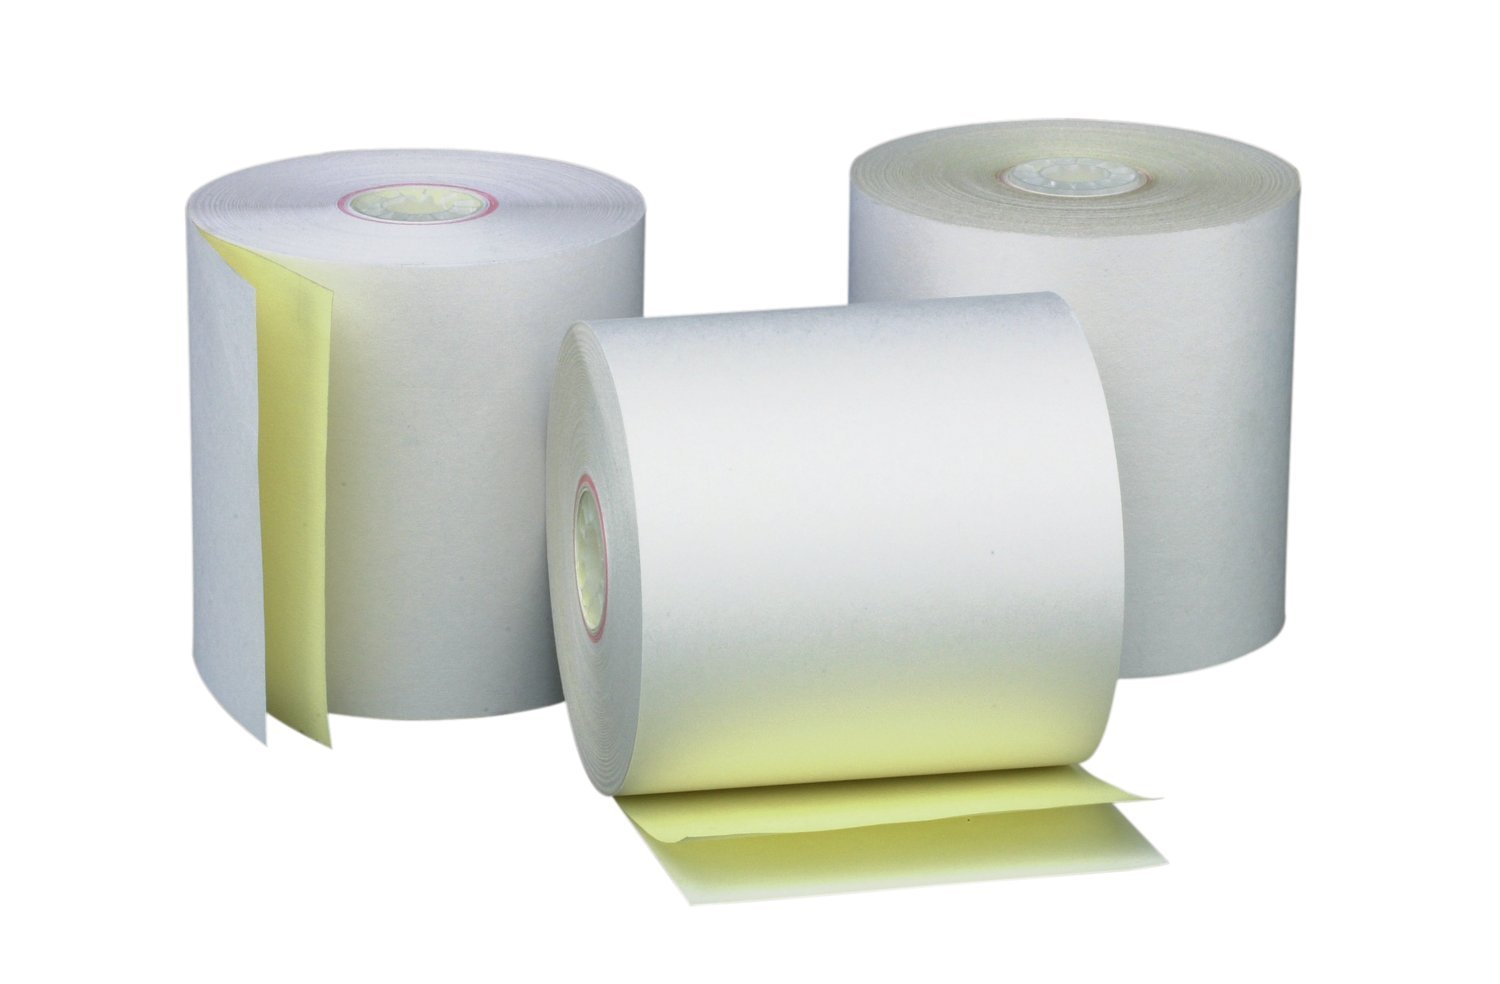 PM Company Perfection 2 Ply POS/Cash Register Rolls, 3 Inches X 90 Feet, White/Canary, 50 per Carton (07706) by PM Company